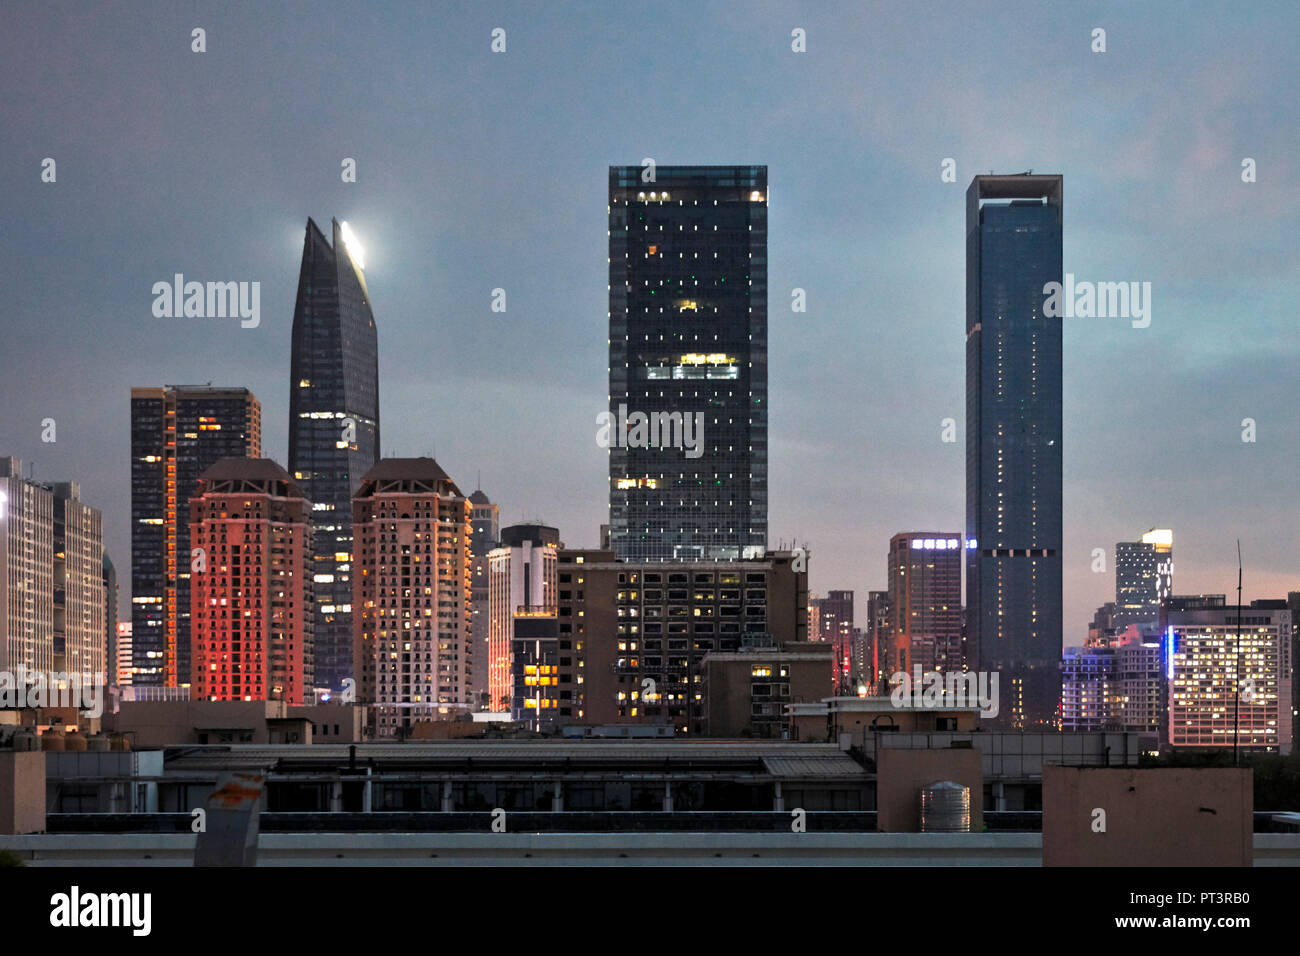 High-rise buildings in Futian District illuminated at dusk. Shenzhen, Guangdong Province, China. Stock Photo